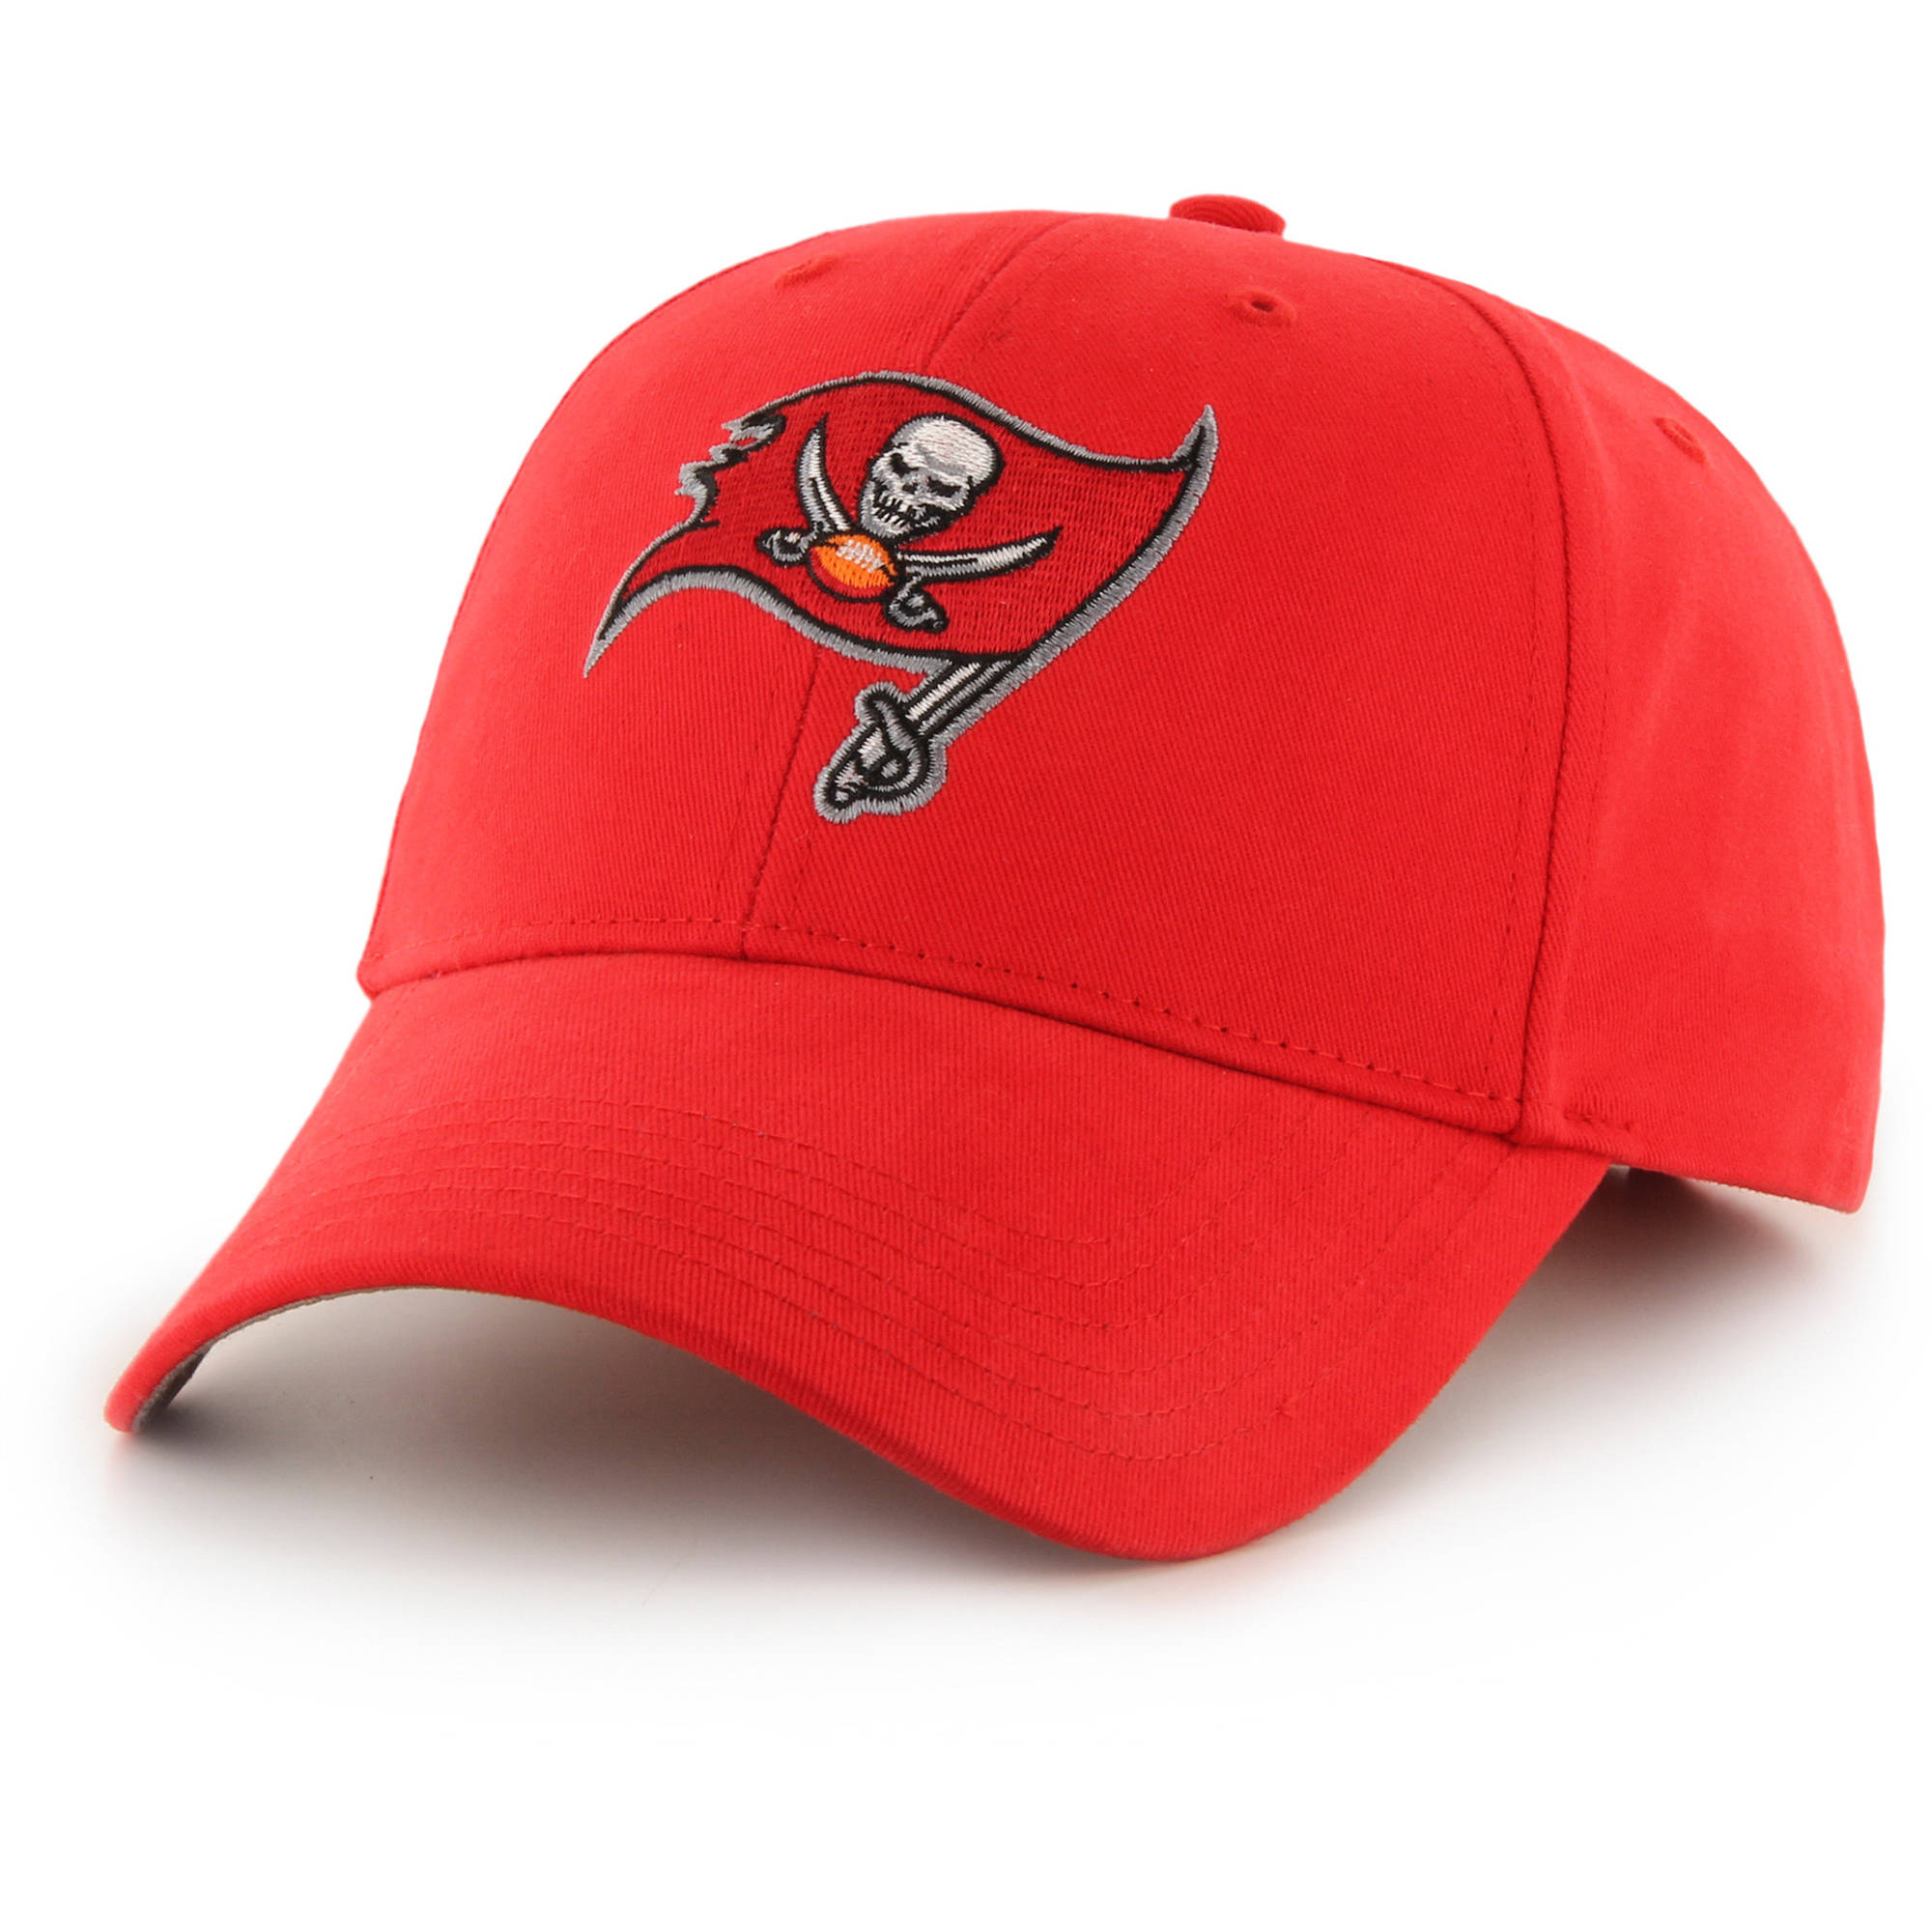 NFL  Tampa Bay Buccaneers Basic Cap / Hat  - Fan Favorite